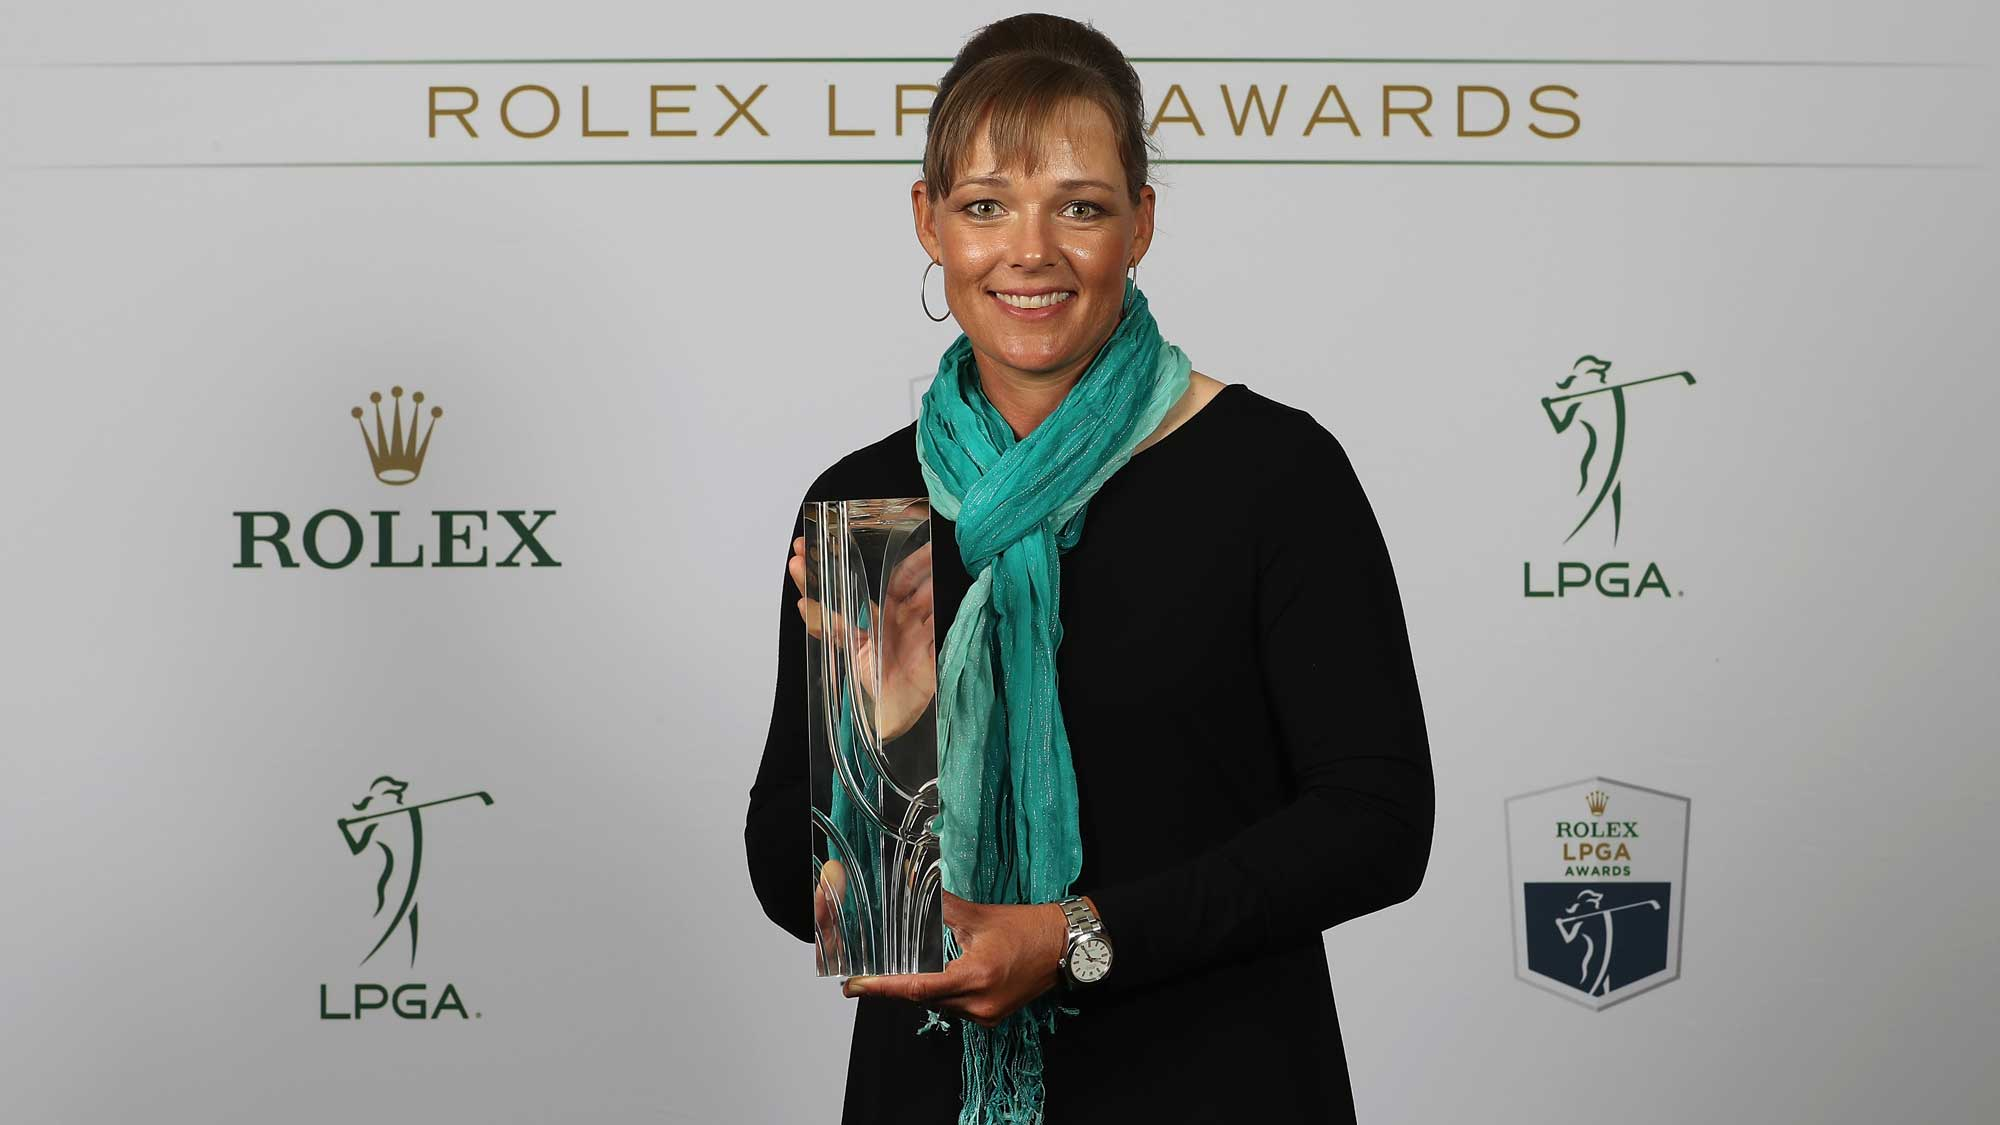 William and Mousie Powell Award recipient Katherine Kirk of Australia poses for a portrait during the LPGA Rolex Players Awards at The Ritz-Carlton Golf Resort